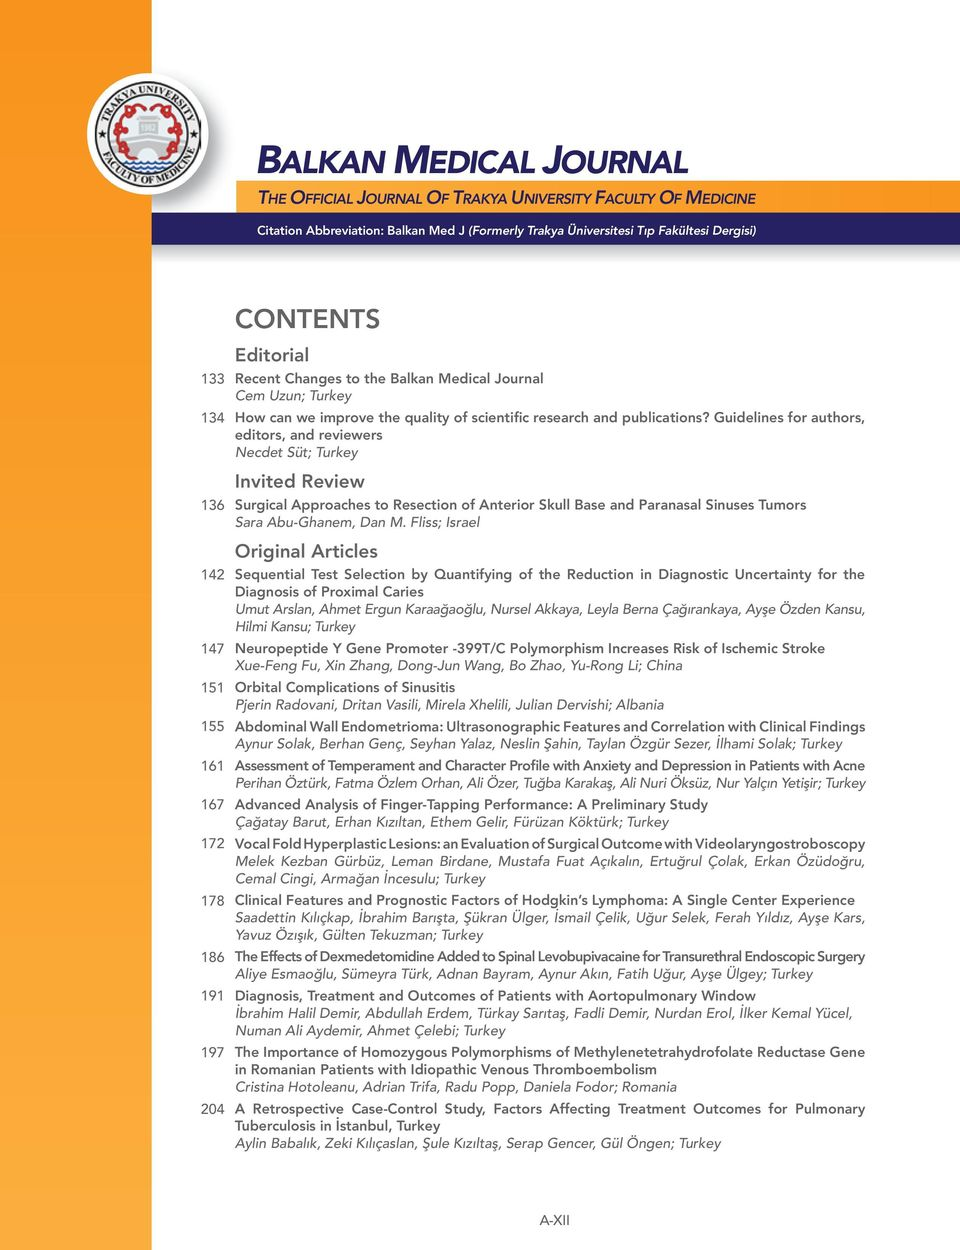 Guidelines for authors, editors, and reviewers Necdet Süt; Turkey Invited Review Surgical Approaches to Resection of Anterior Skull Base and Paranasal Sinuses Tumors Sara Abu-Ghanem, Dan M.